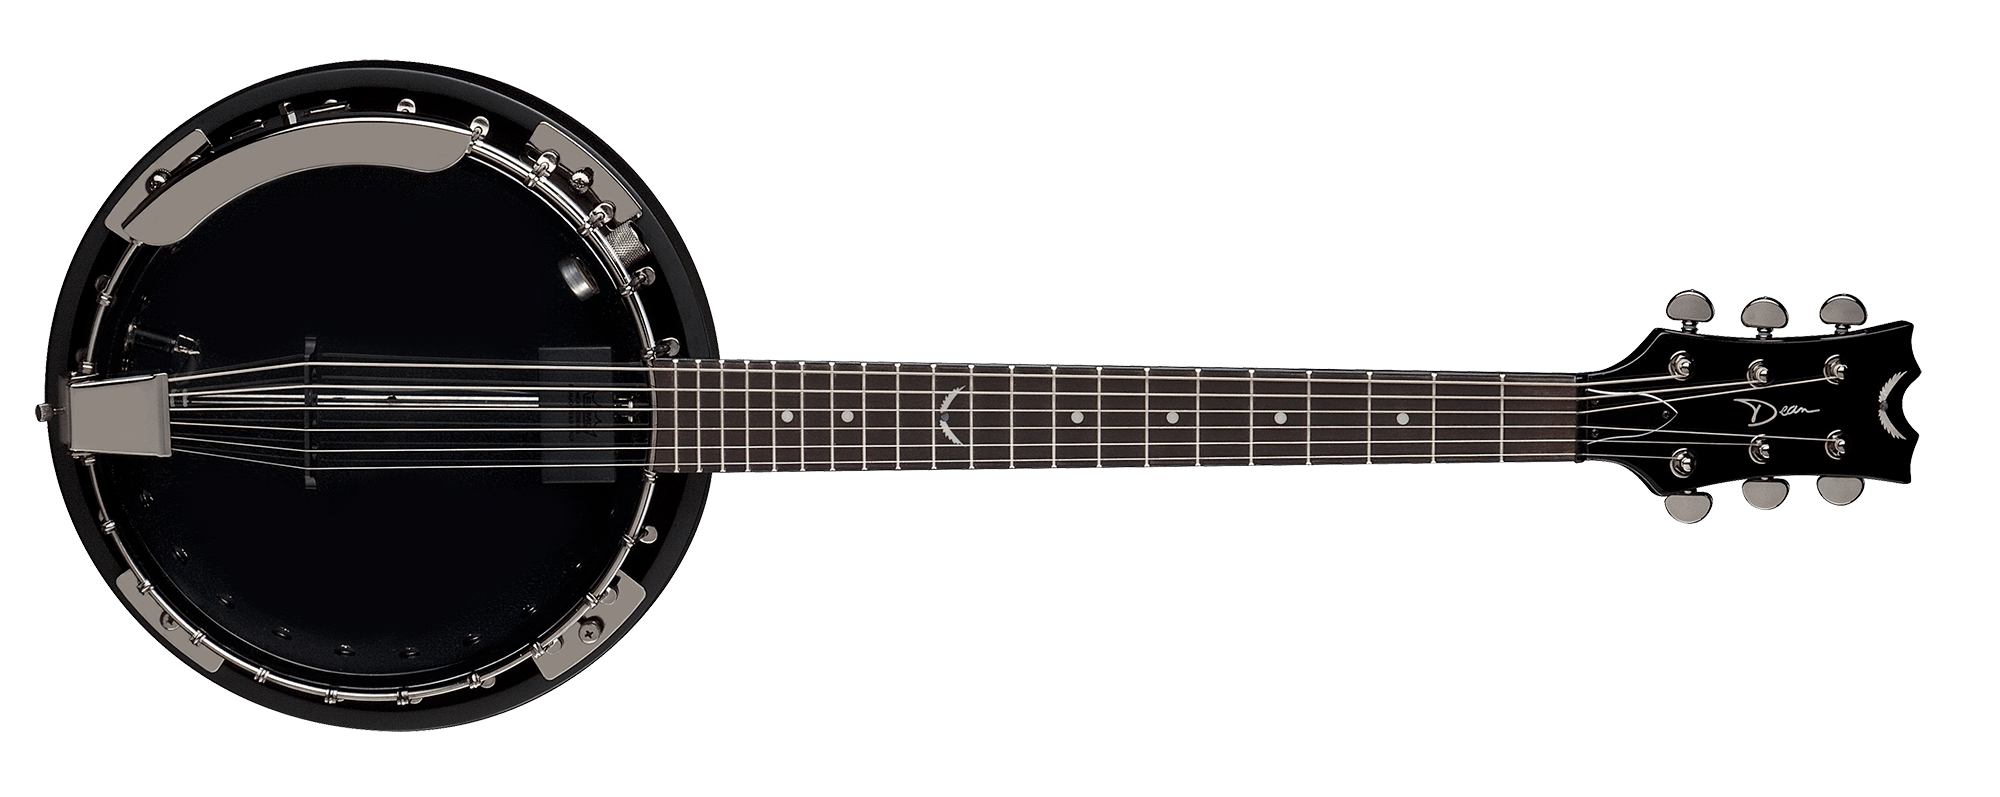 Backwoods 6 Banjo w/Pickup Black Chrome